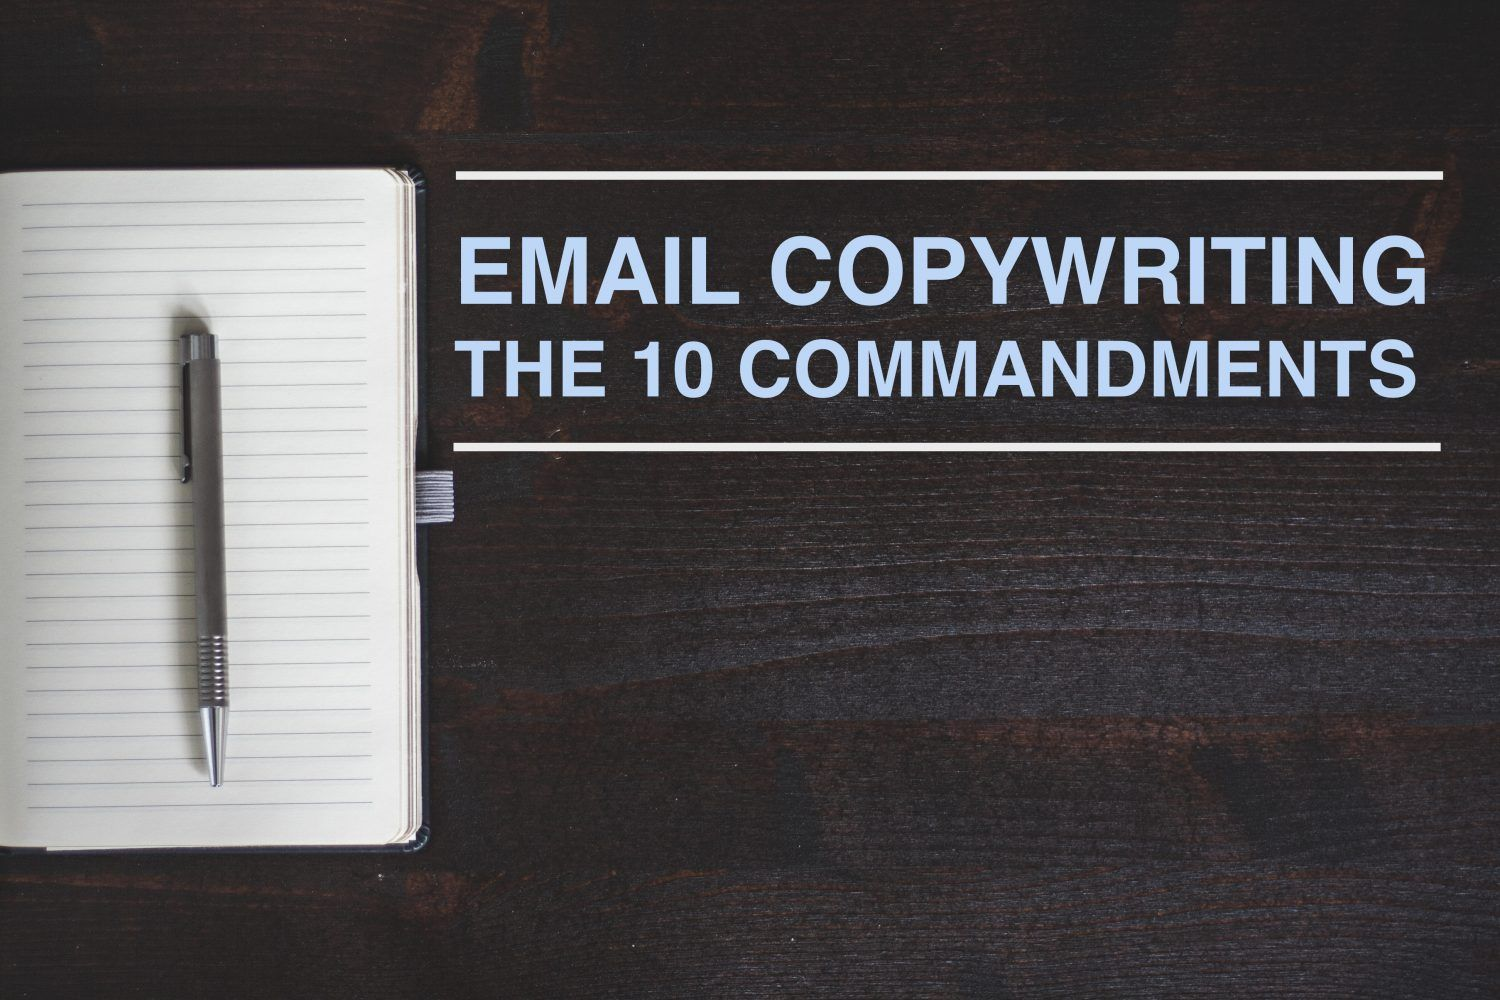 Email copywriting the 10 commandments to get money